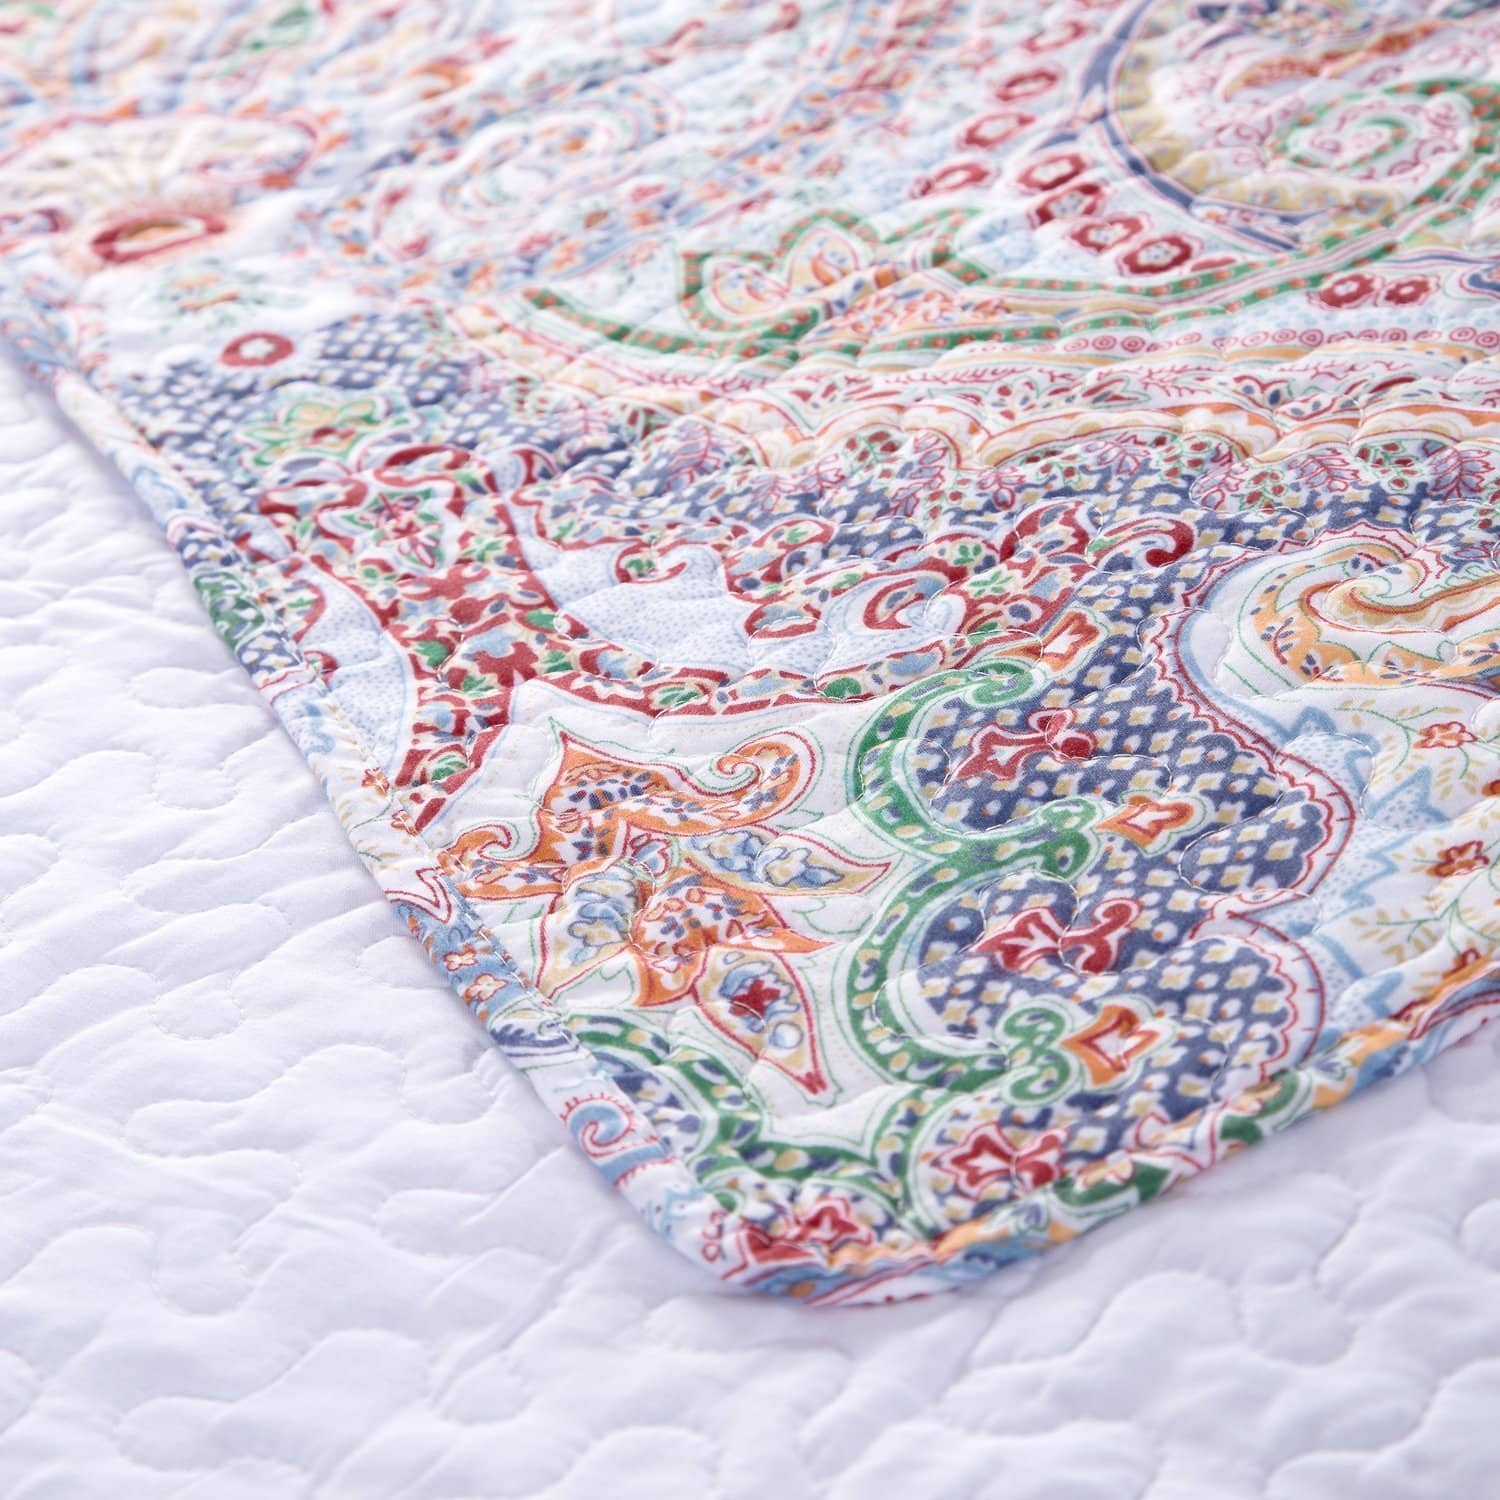 Bedshe: Printed Quilt Coverlet Set, Various sizes, from $14.84 AC/Prime shipping